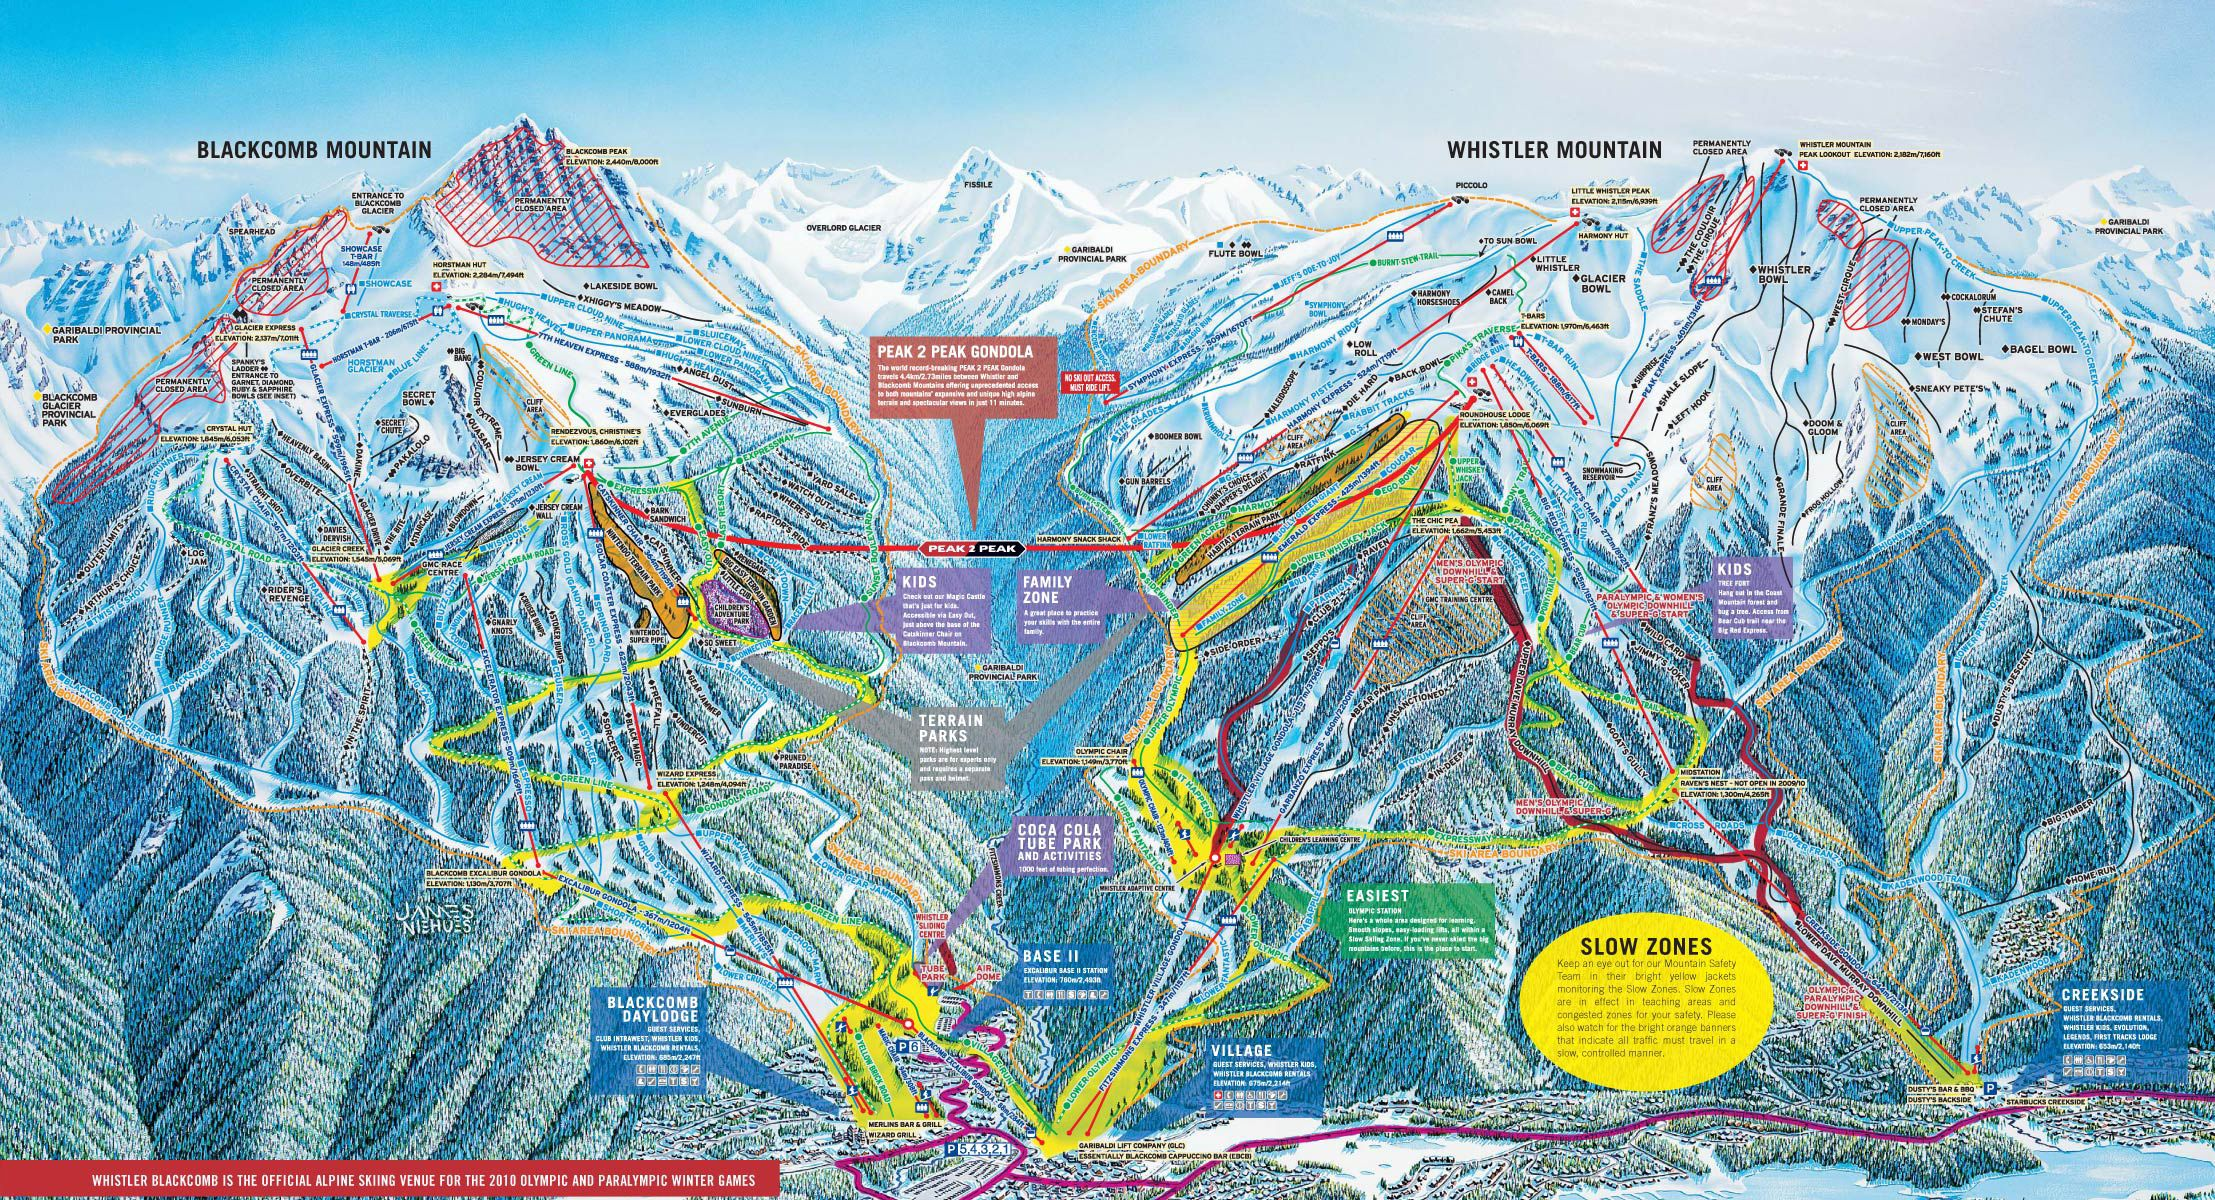 WhistlerBlackcomb TrailMap   Check Out Flute bowl | Where I've